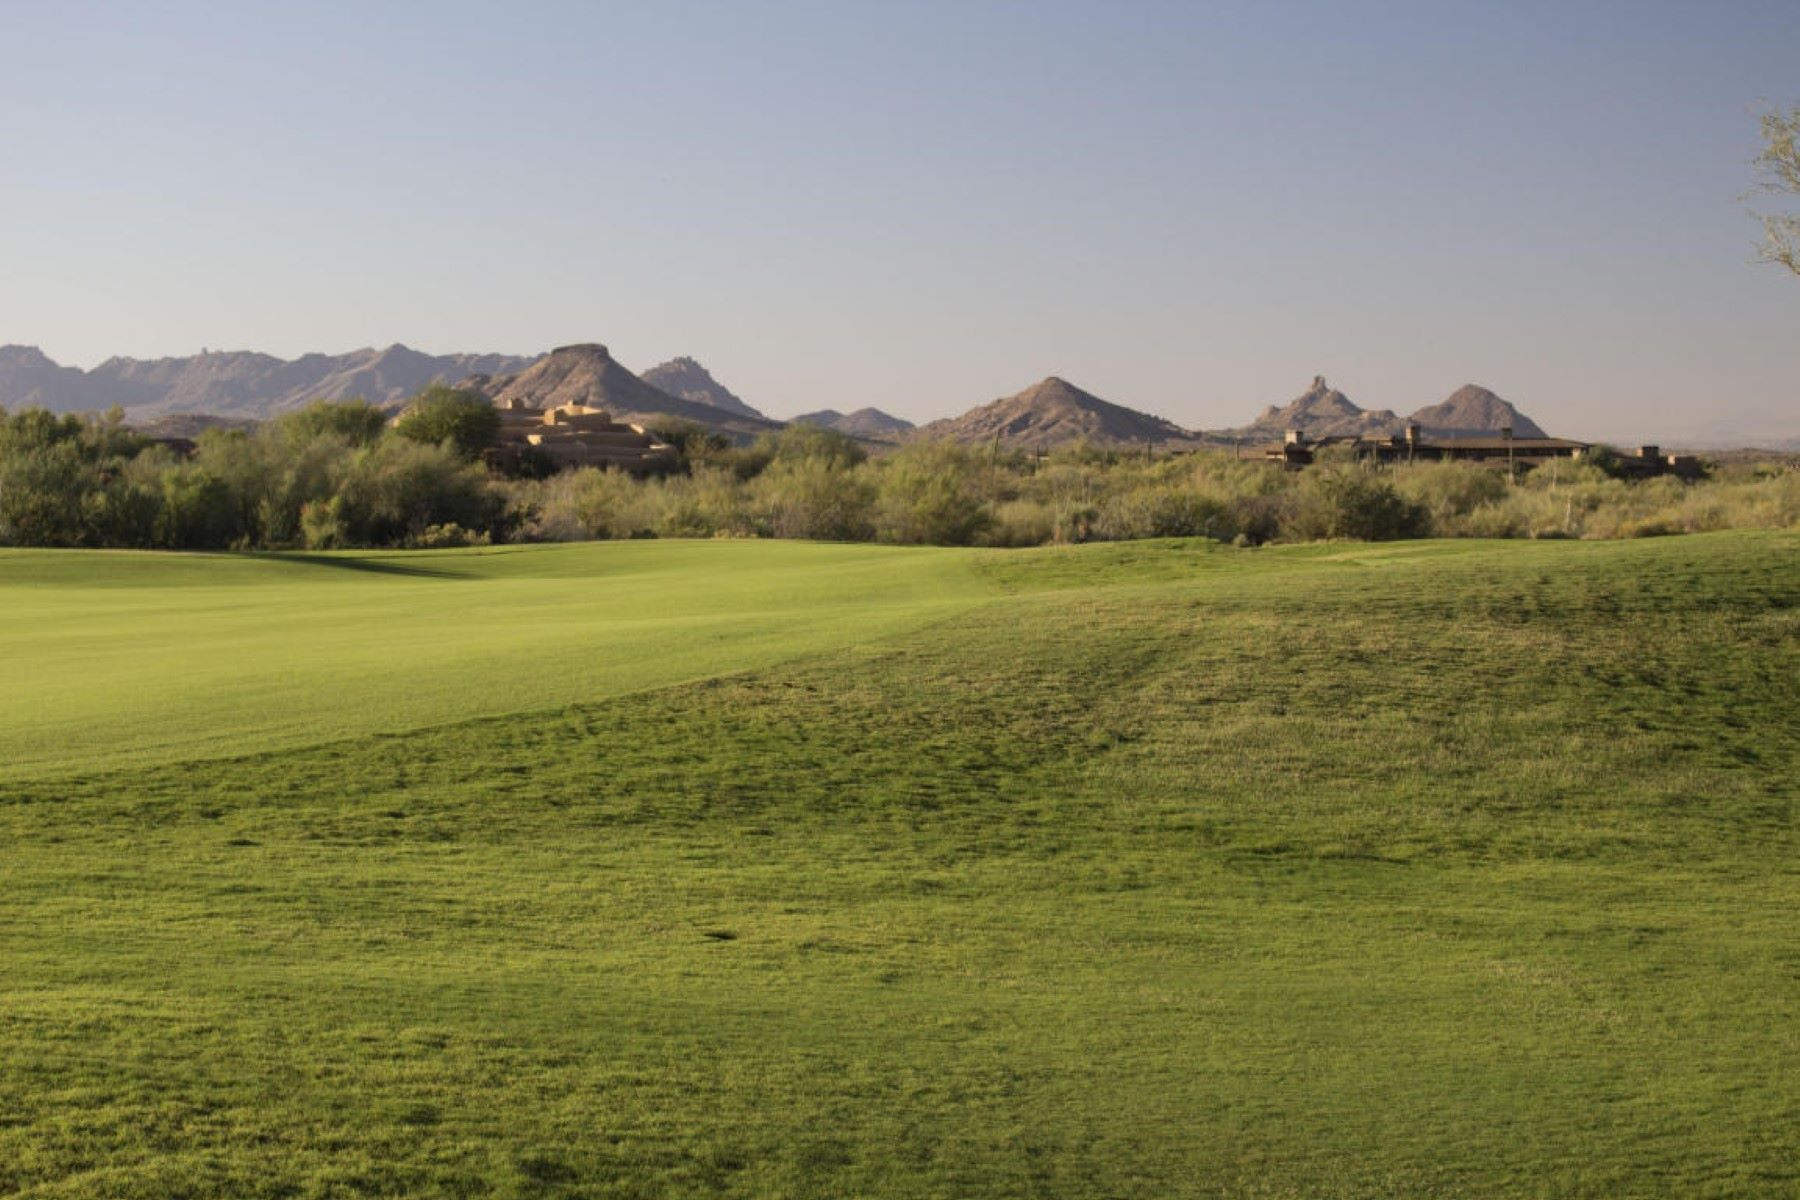 Terreno para Venda às South facing fairway lot on the 1st hole of the Mirabel Club golf course 37655 N 104th Pl #34 Scottsdale, Arizona, 85262 Estados Unidos